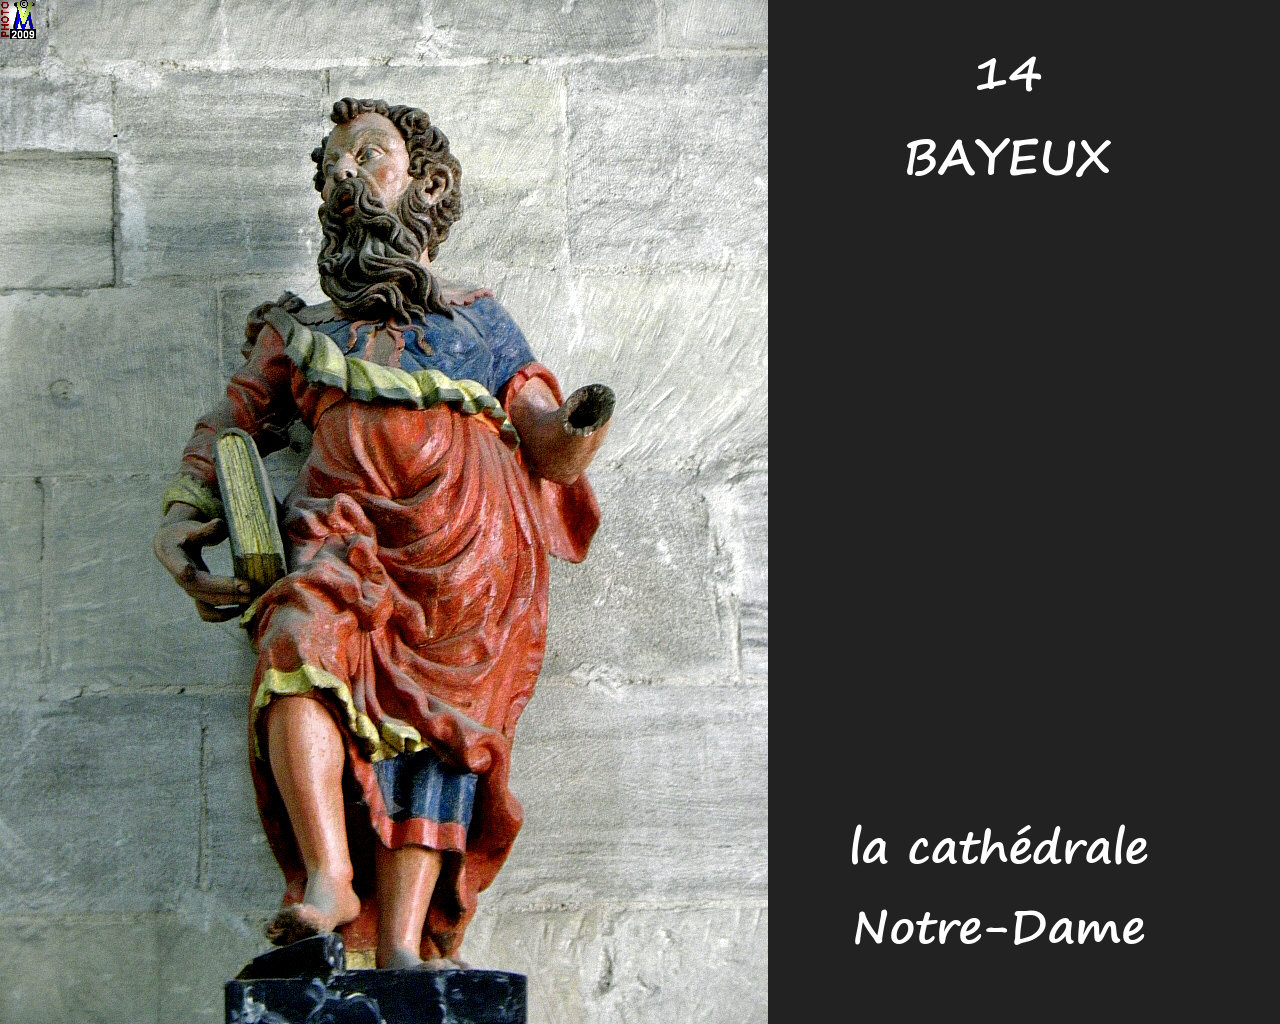 14BAYEUX_cathedrale_260.jpg